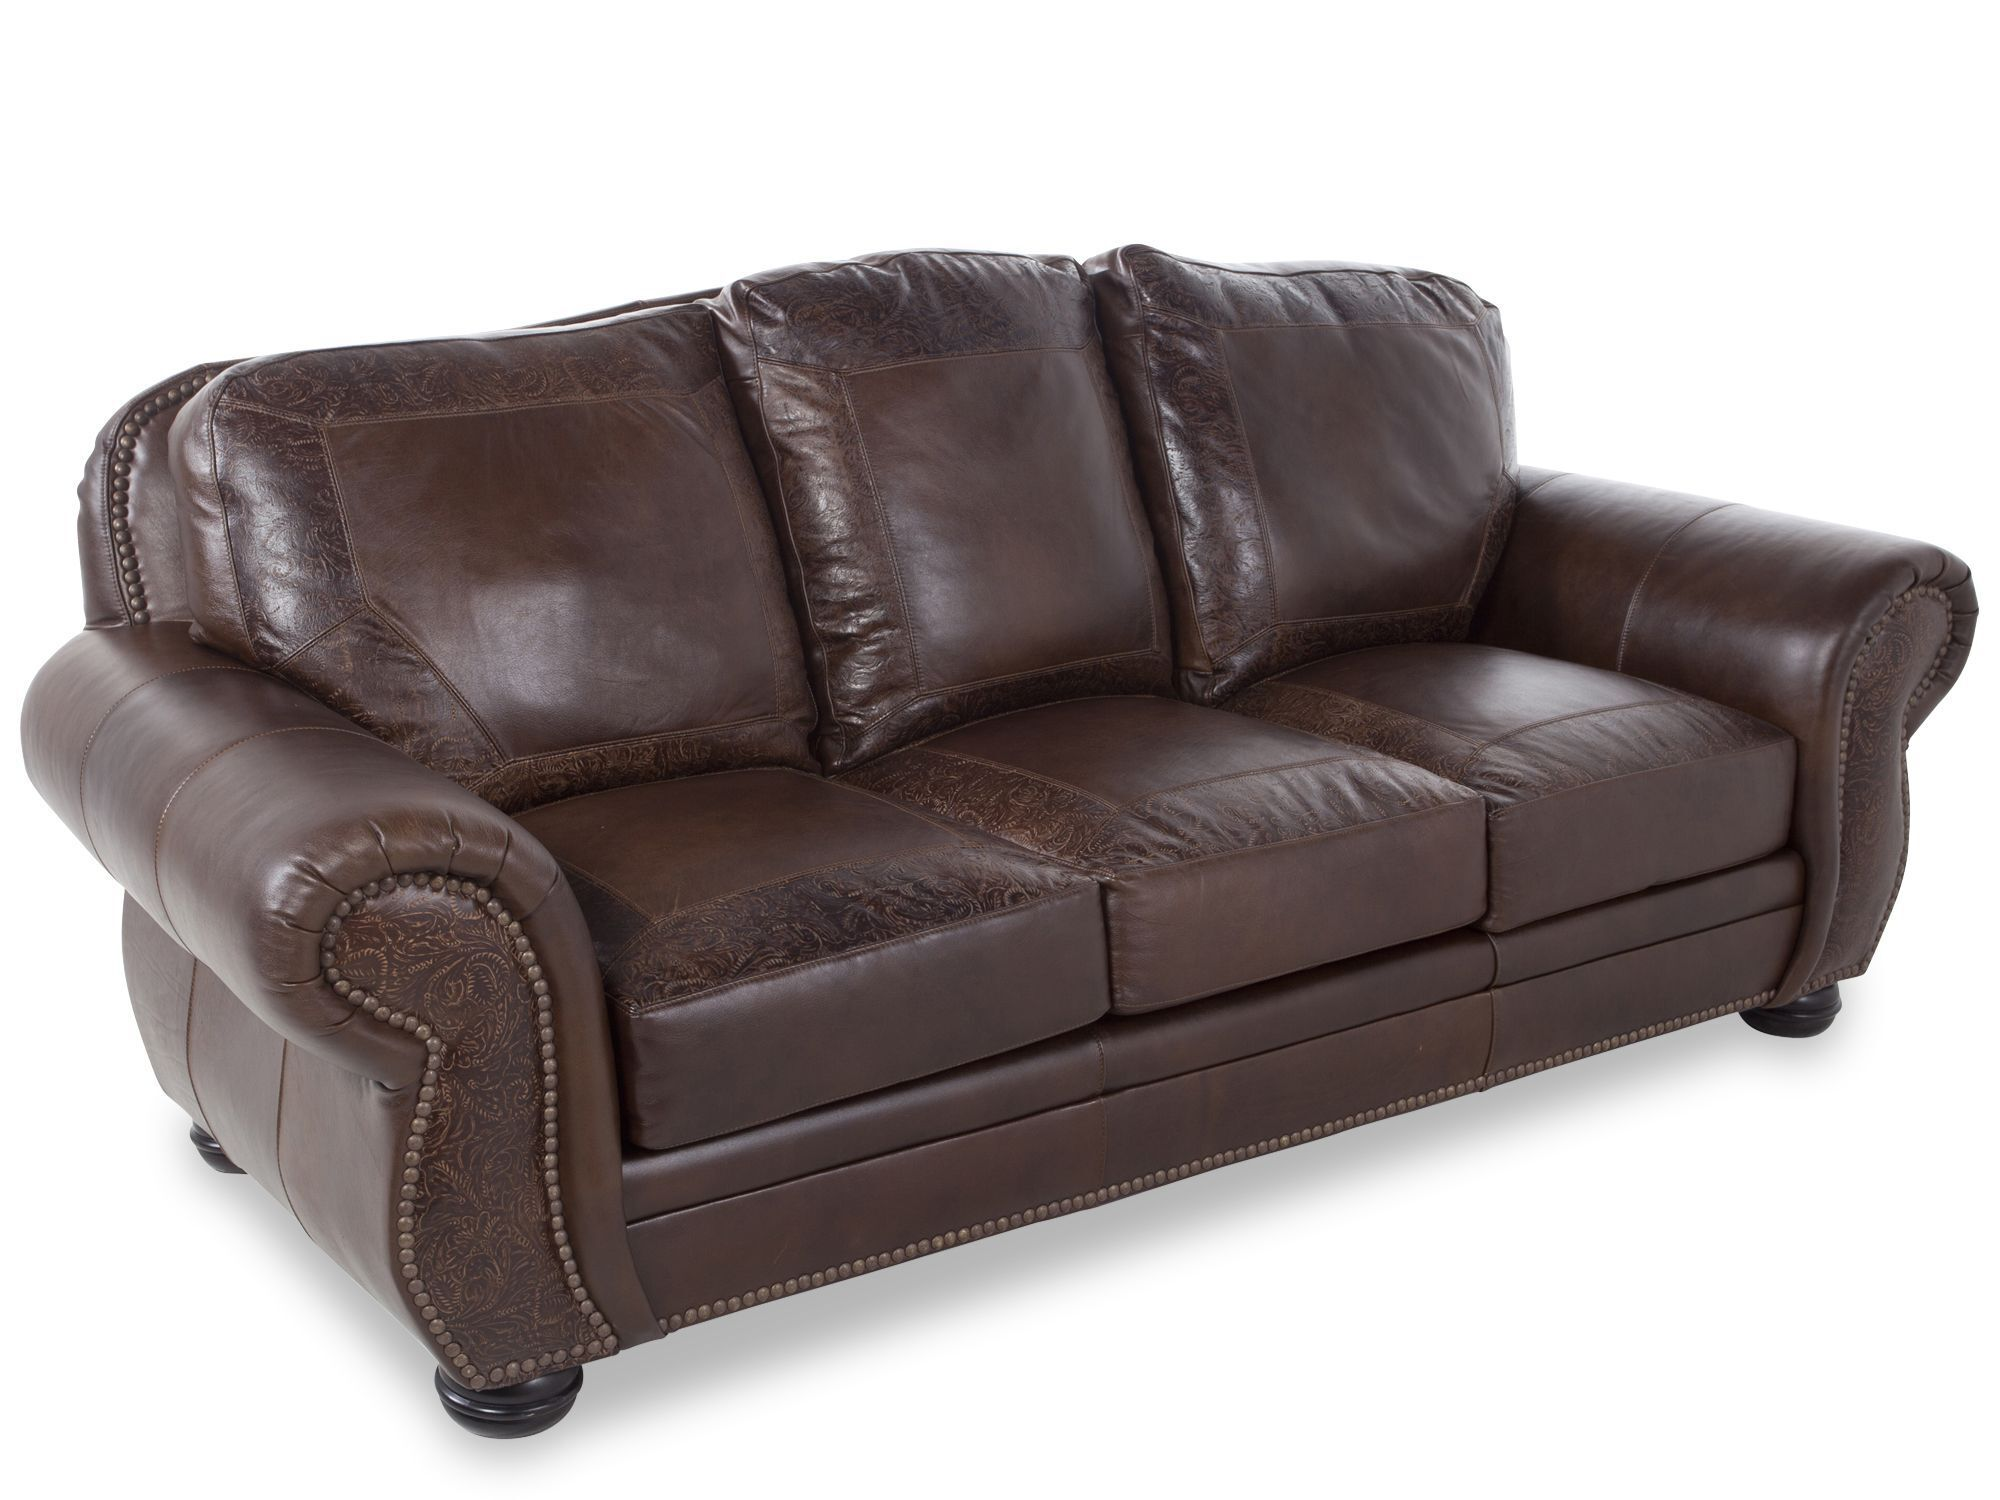 USA Leather Oak Paisley Sofa Part 47